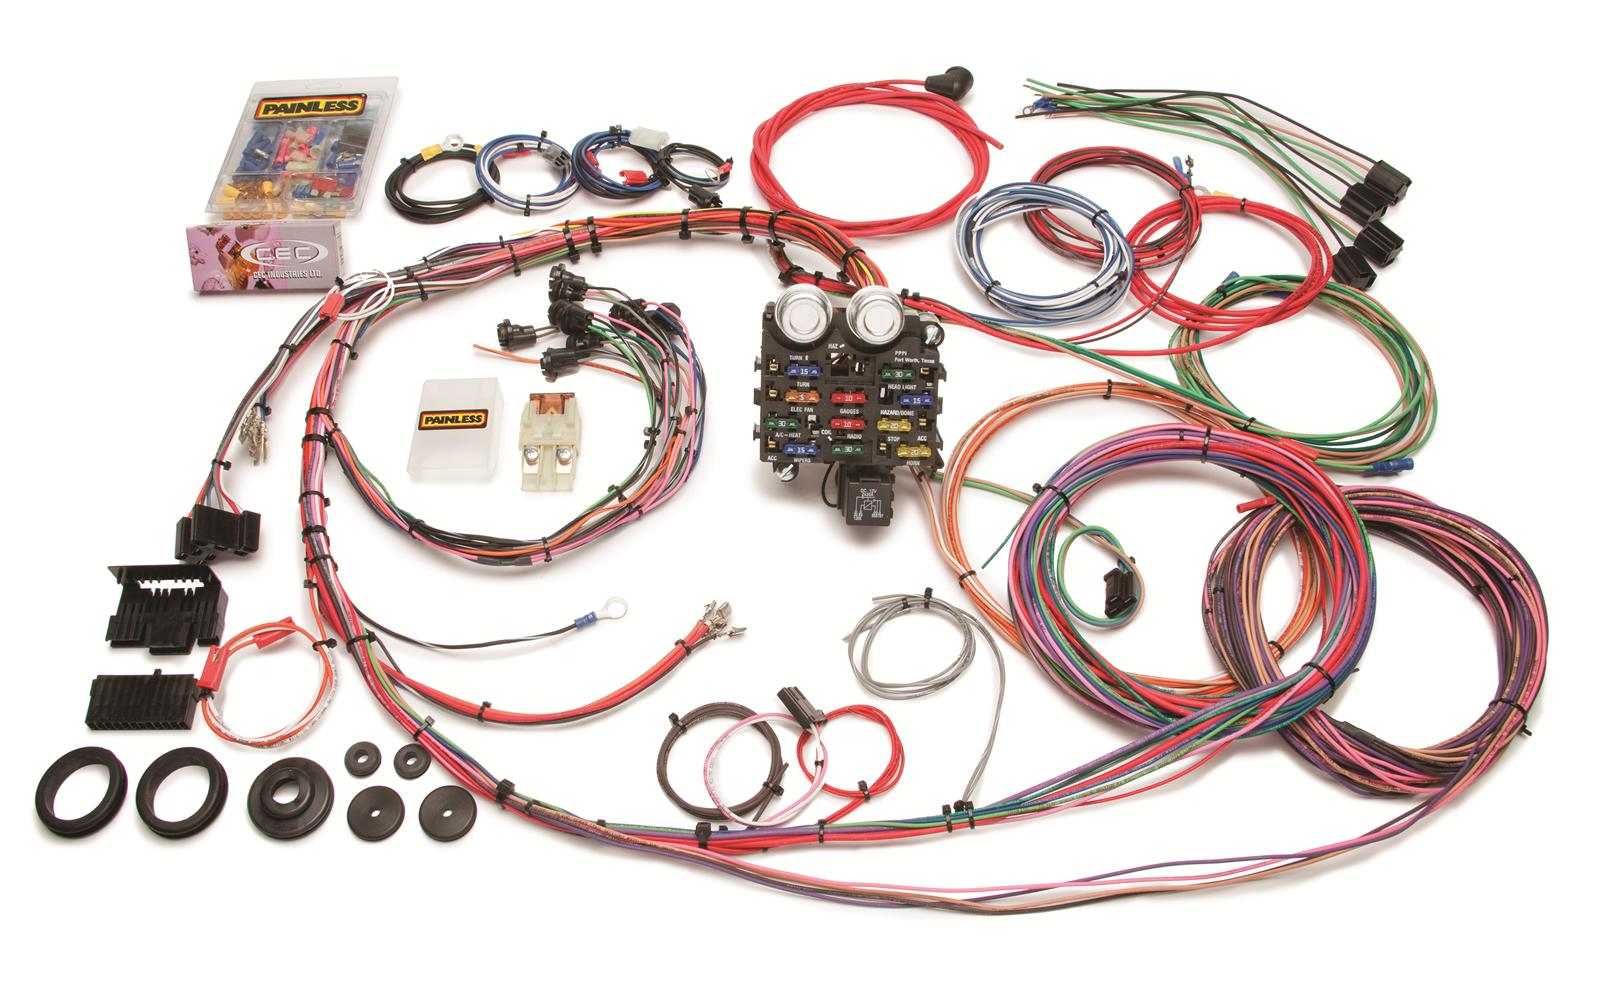 prf 10112_xl painless performance 19 circuit gmc chevy truck harnesses 10112 painless wiring harness at crackthecode.co